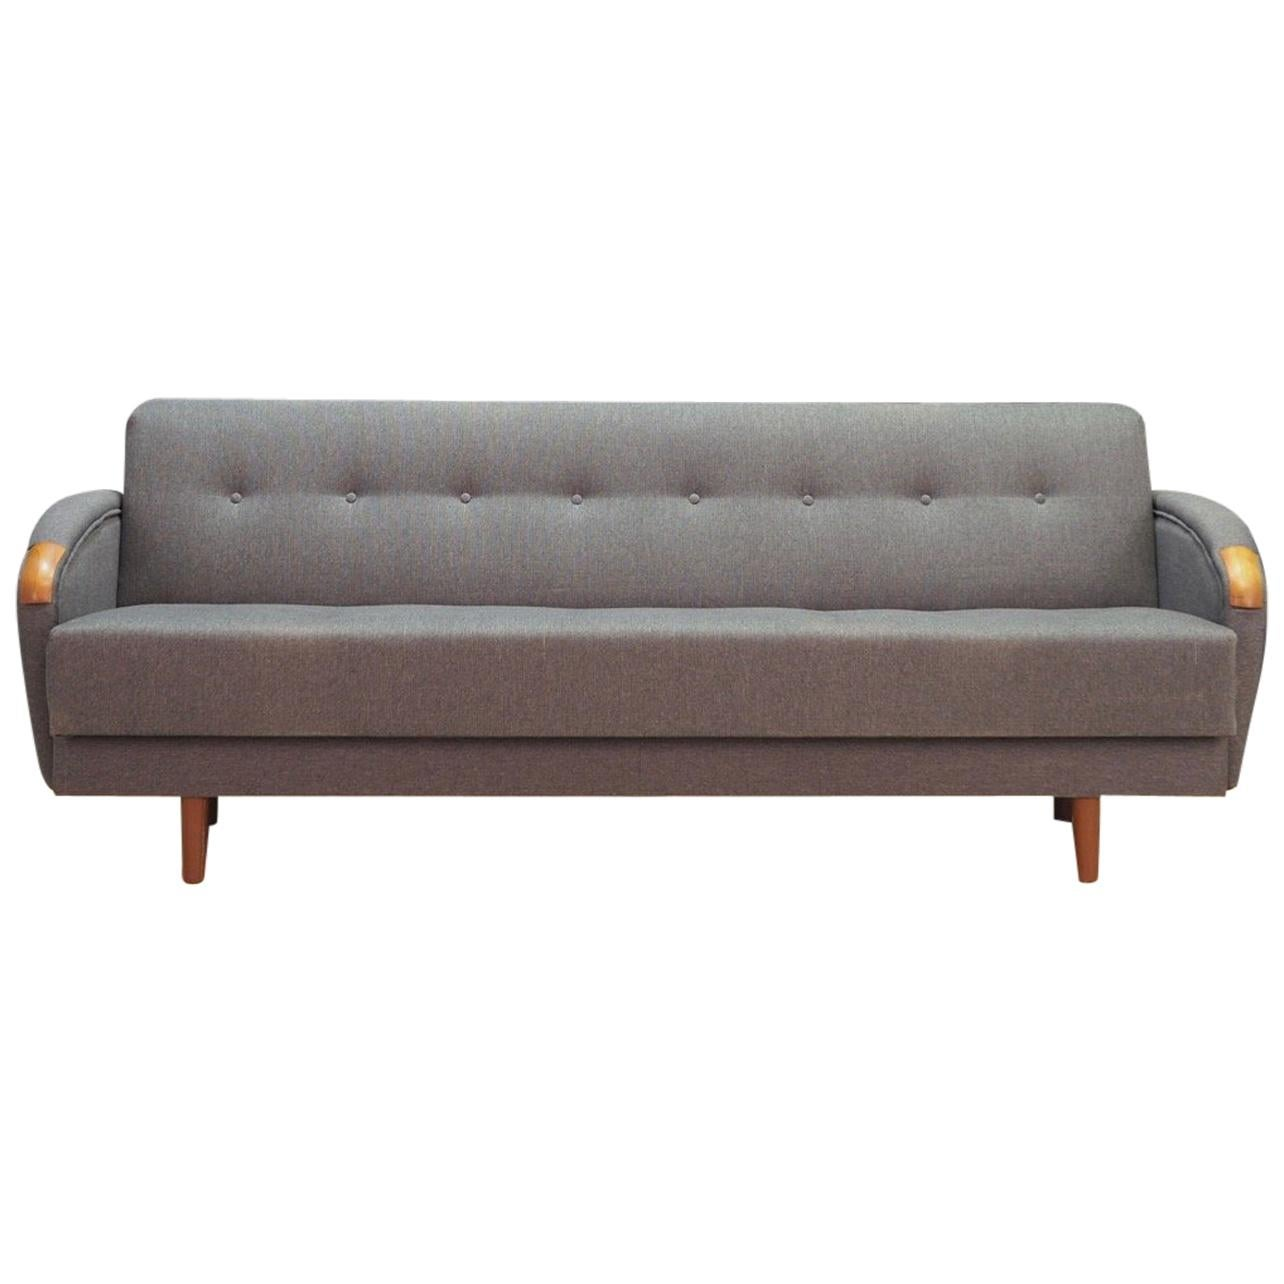 Rolf Benz Sofa Pfister 1970s Sectional Sofas 211 For Sale At 1stdibs